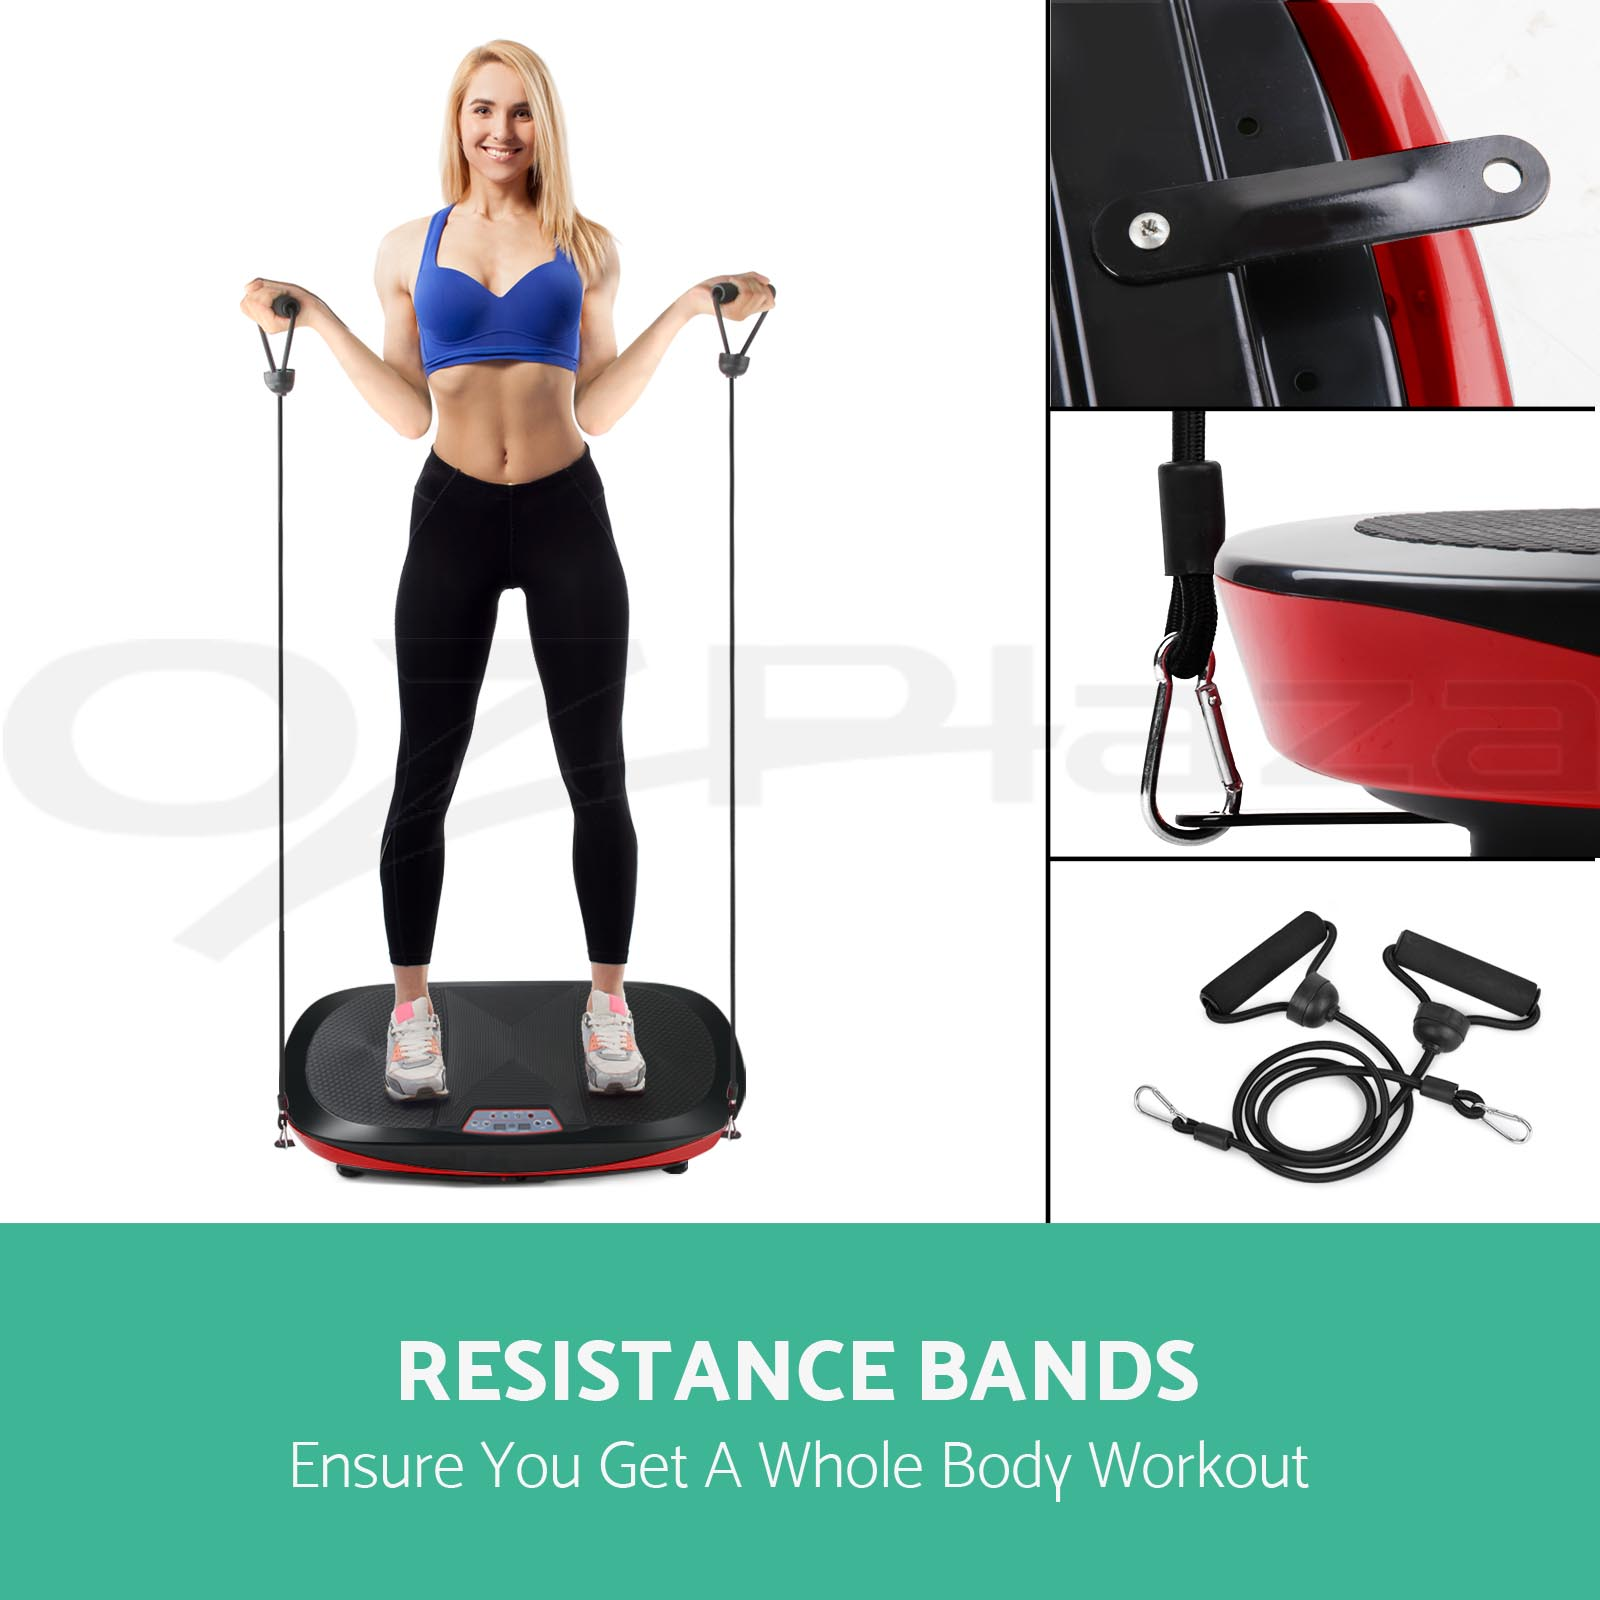 988e5145c29 Body shaper vibration plate   Cyber monday cell phone cases